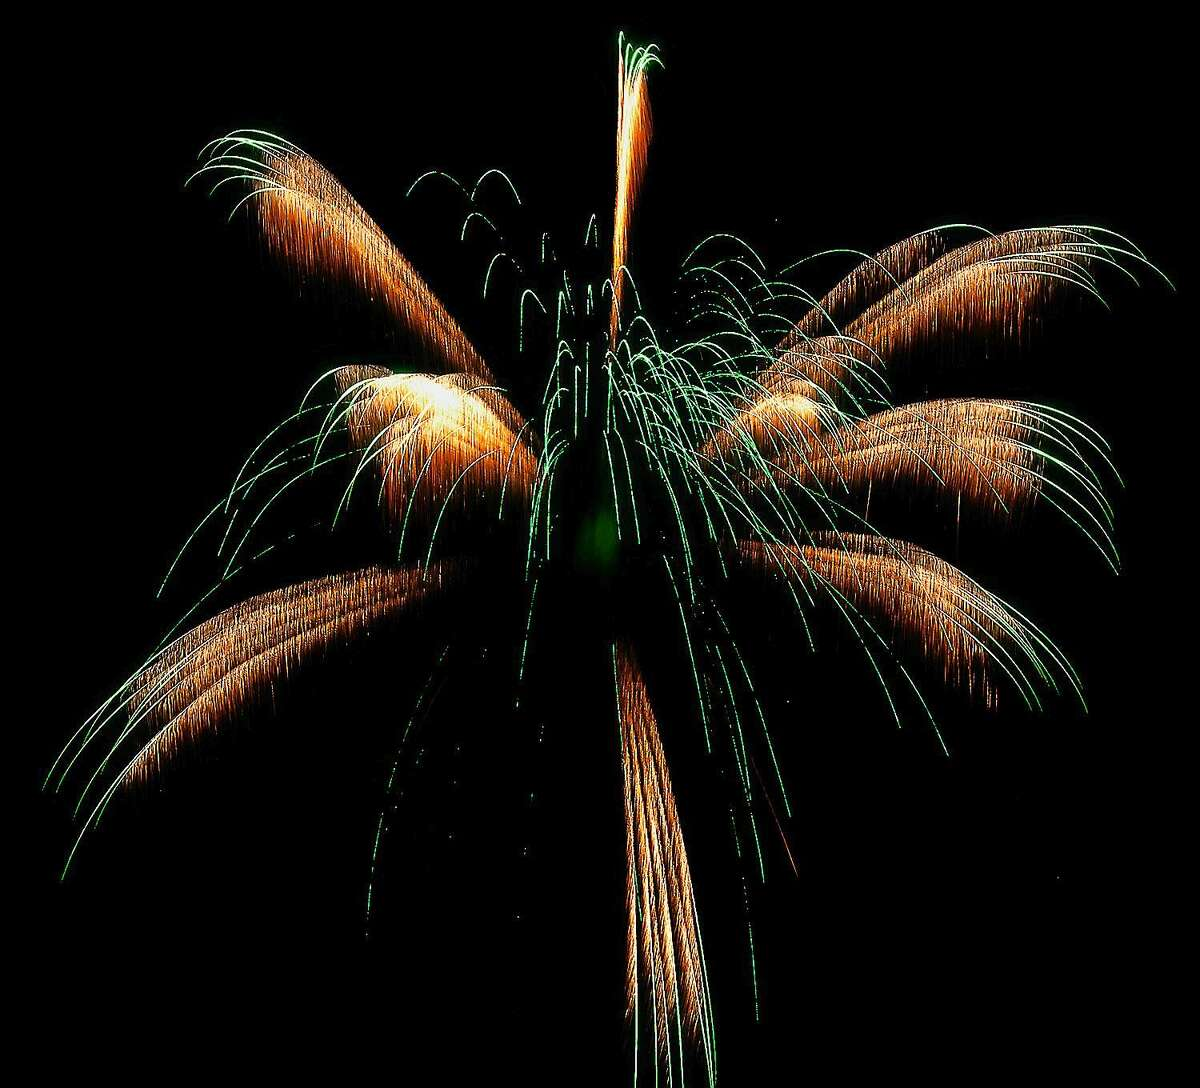 Fireworks will be launched Saturday night in Portland at the Exchange Fairgrounds.